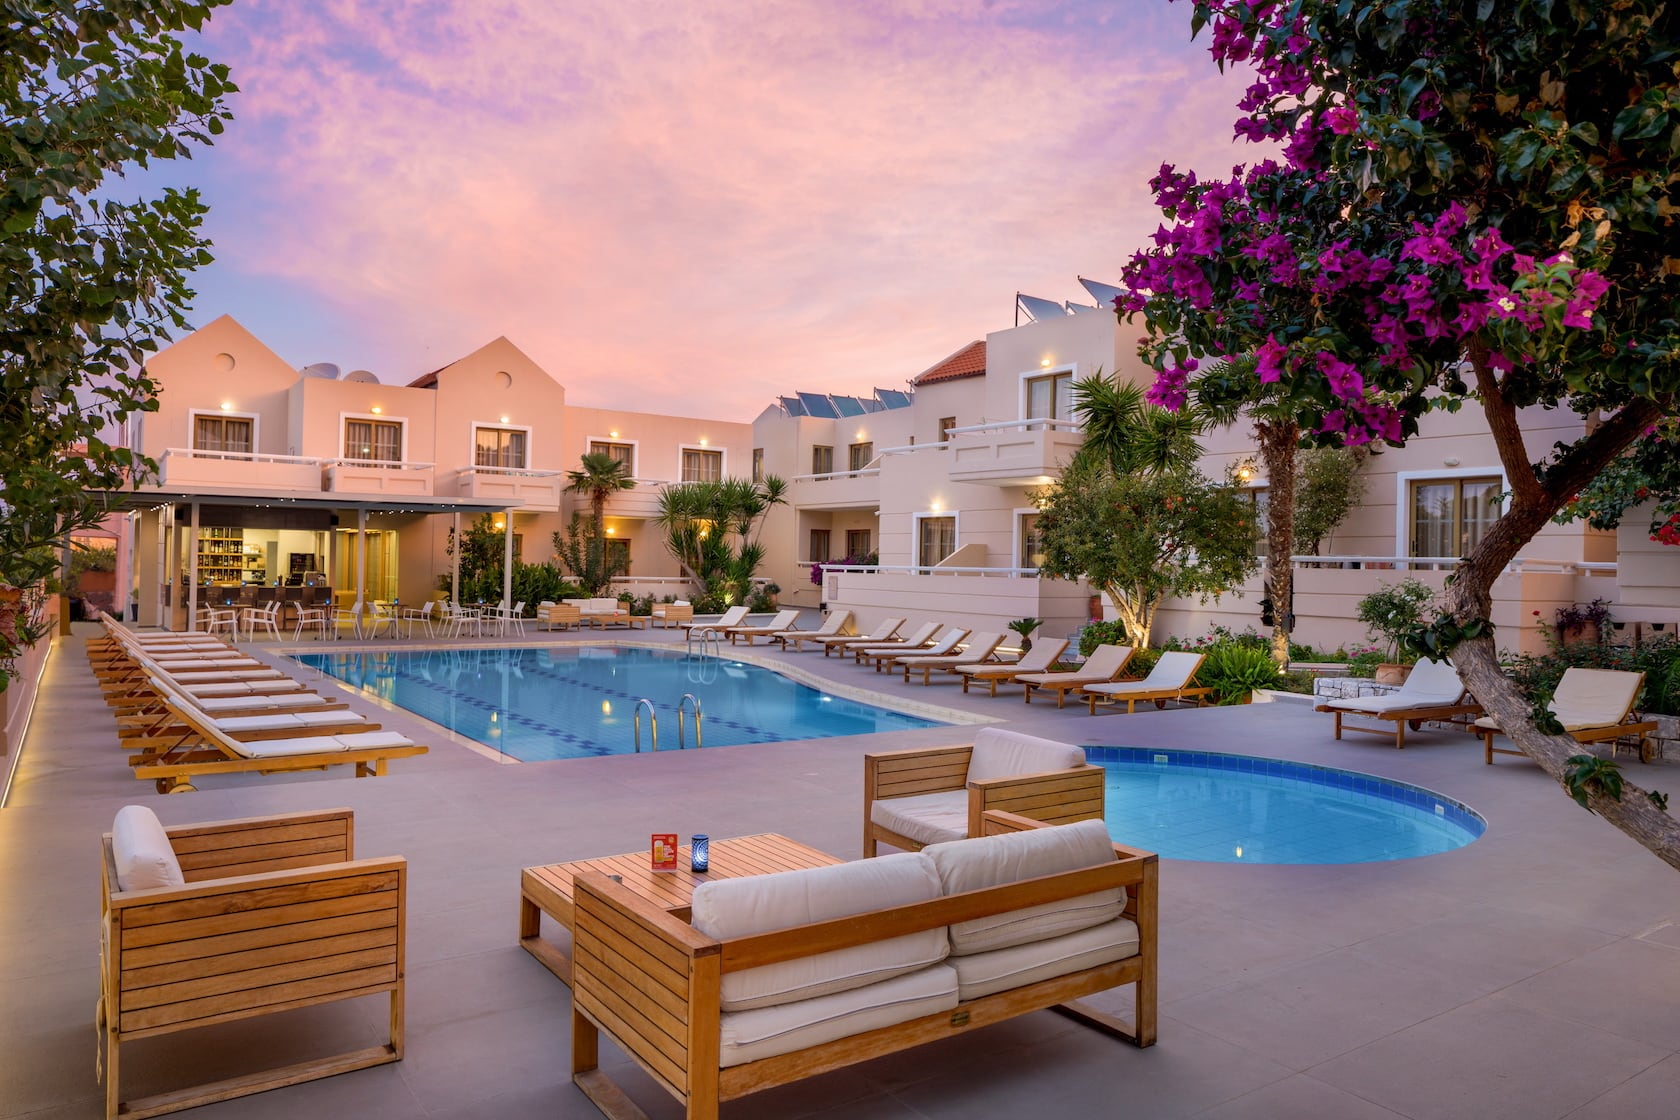 Evening at the area where two pools are located in the Oscar Suites & Village in Chania, Crete.